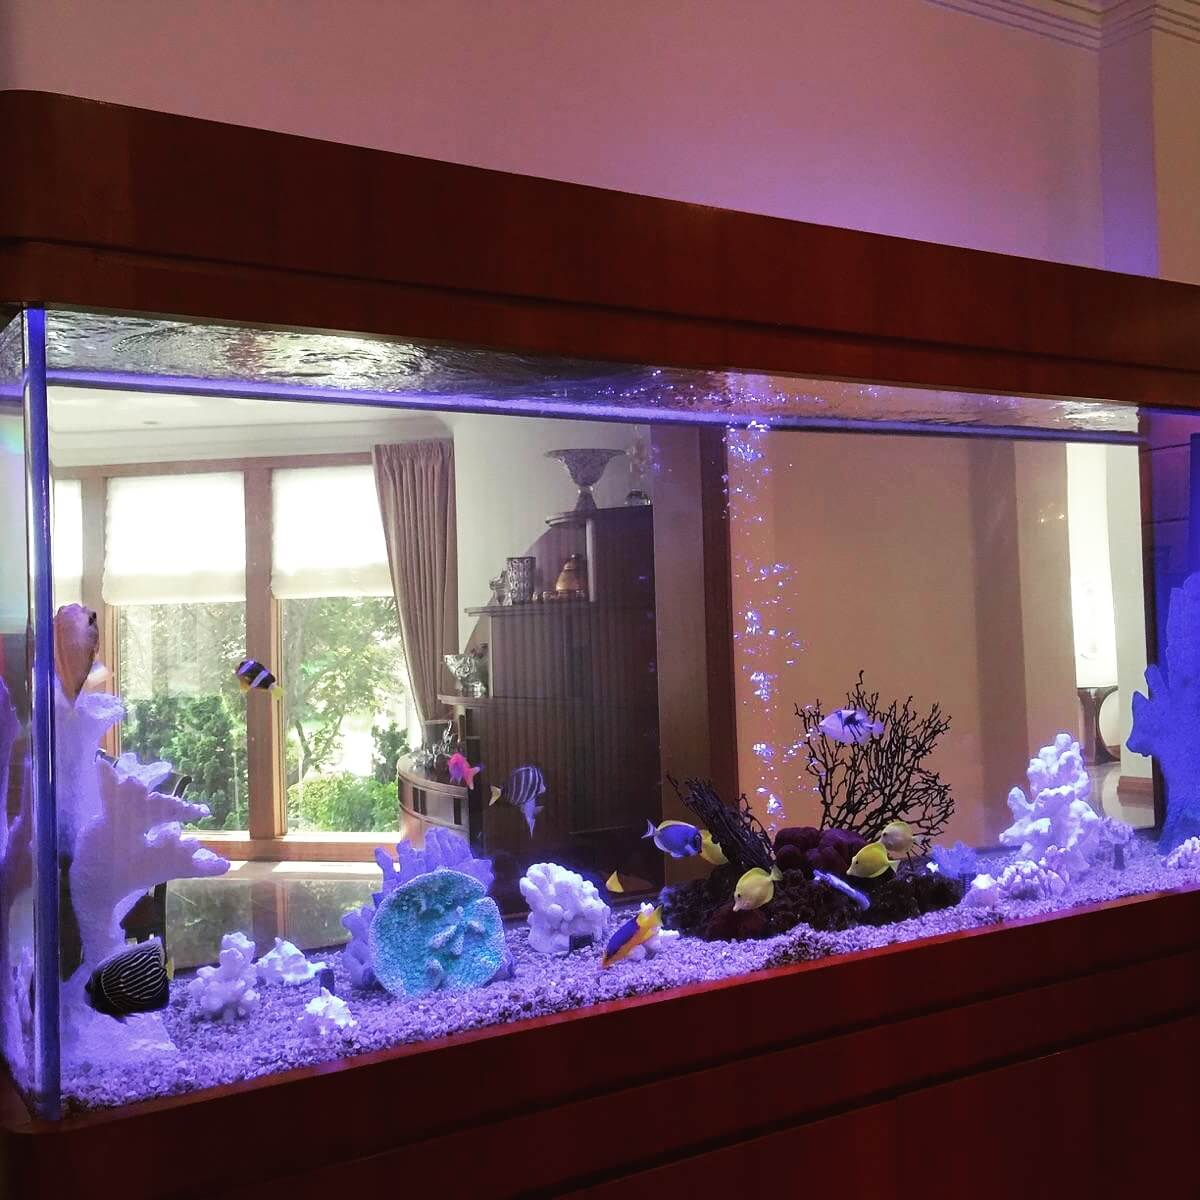 Custom See-Through Aquarium